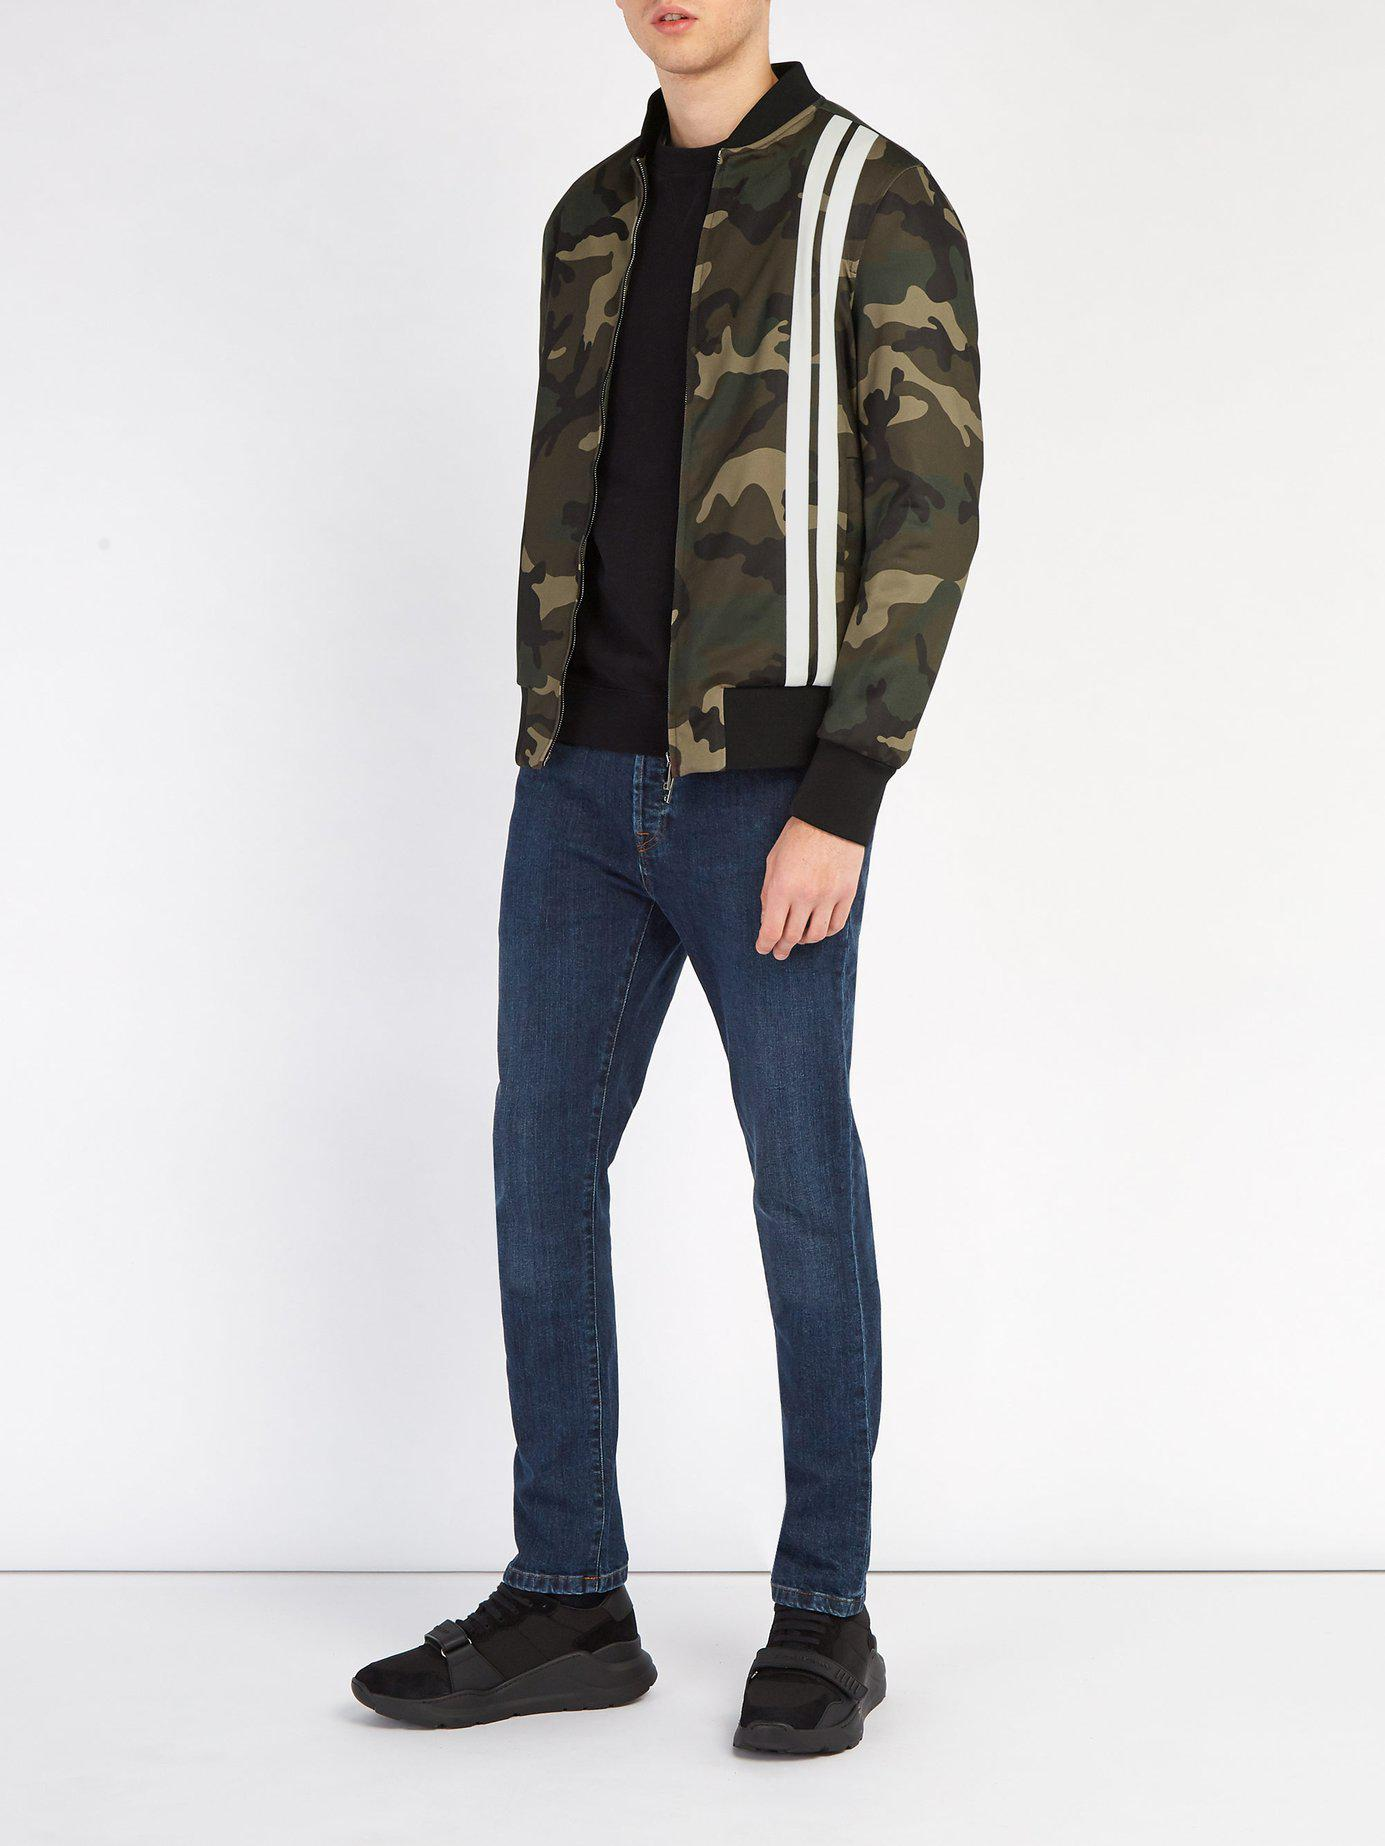 37cfada47caef Lyst - Valentino Camouflage Print Bomber Jacket in Green for Men - Save 60%